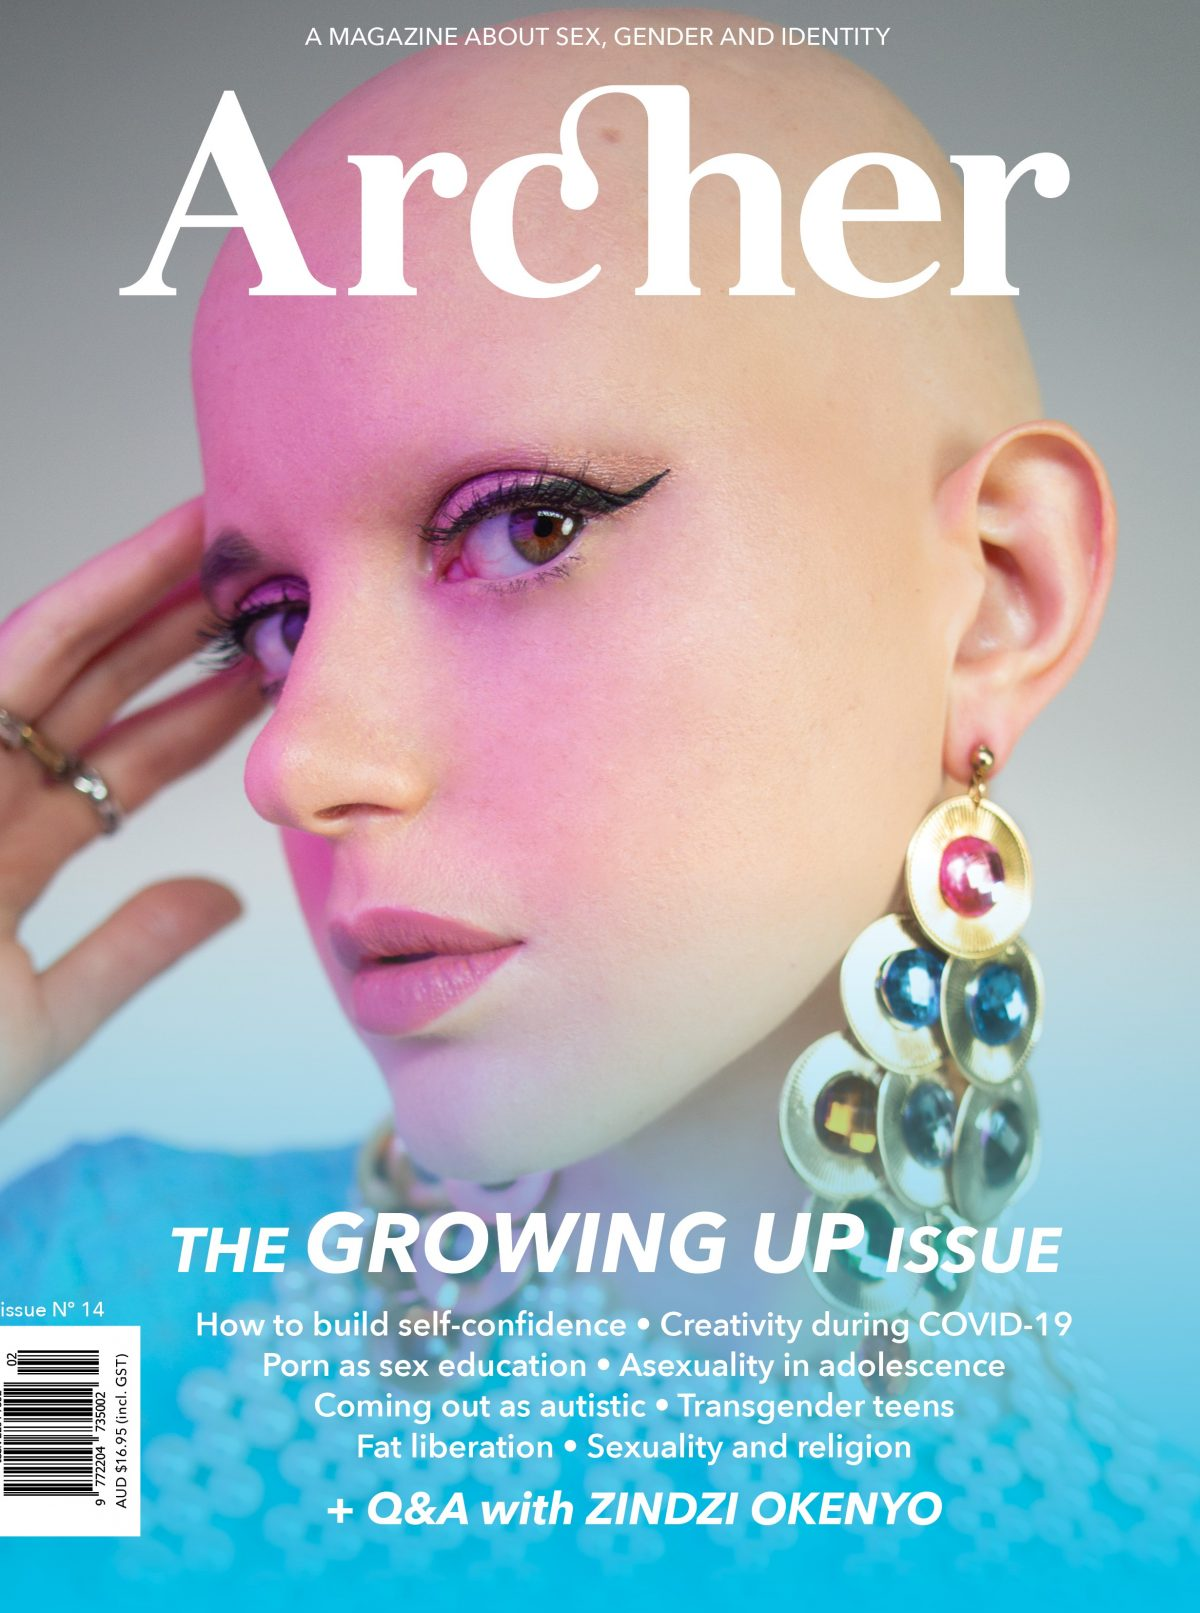 Archer Magazine issue #14 – the GROWING UP issue